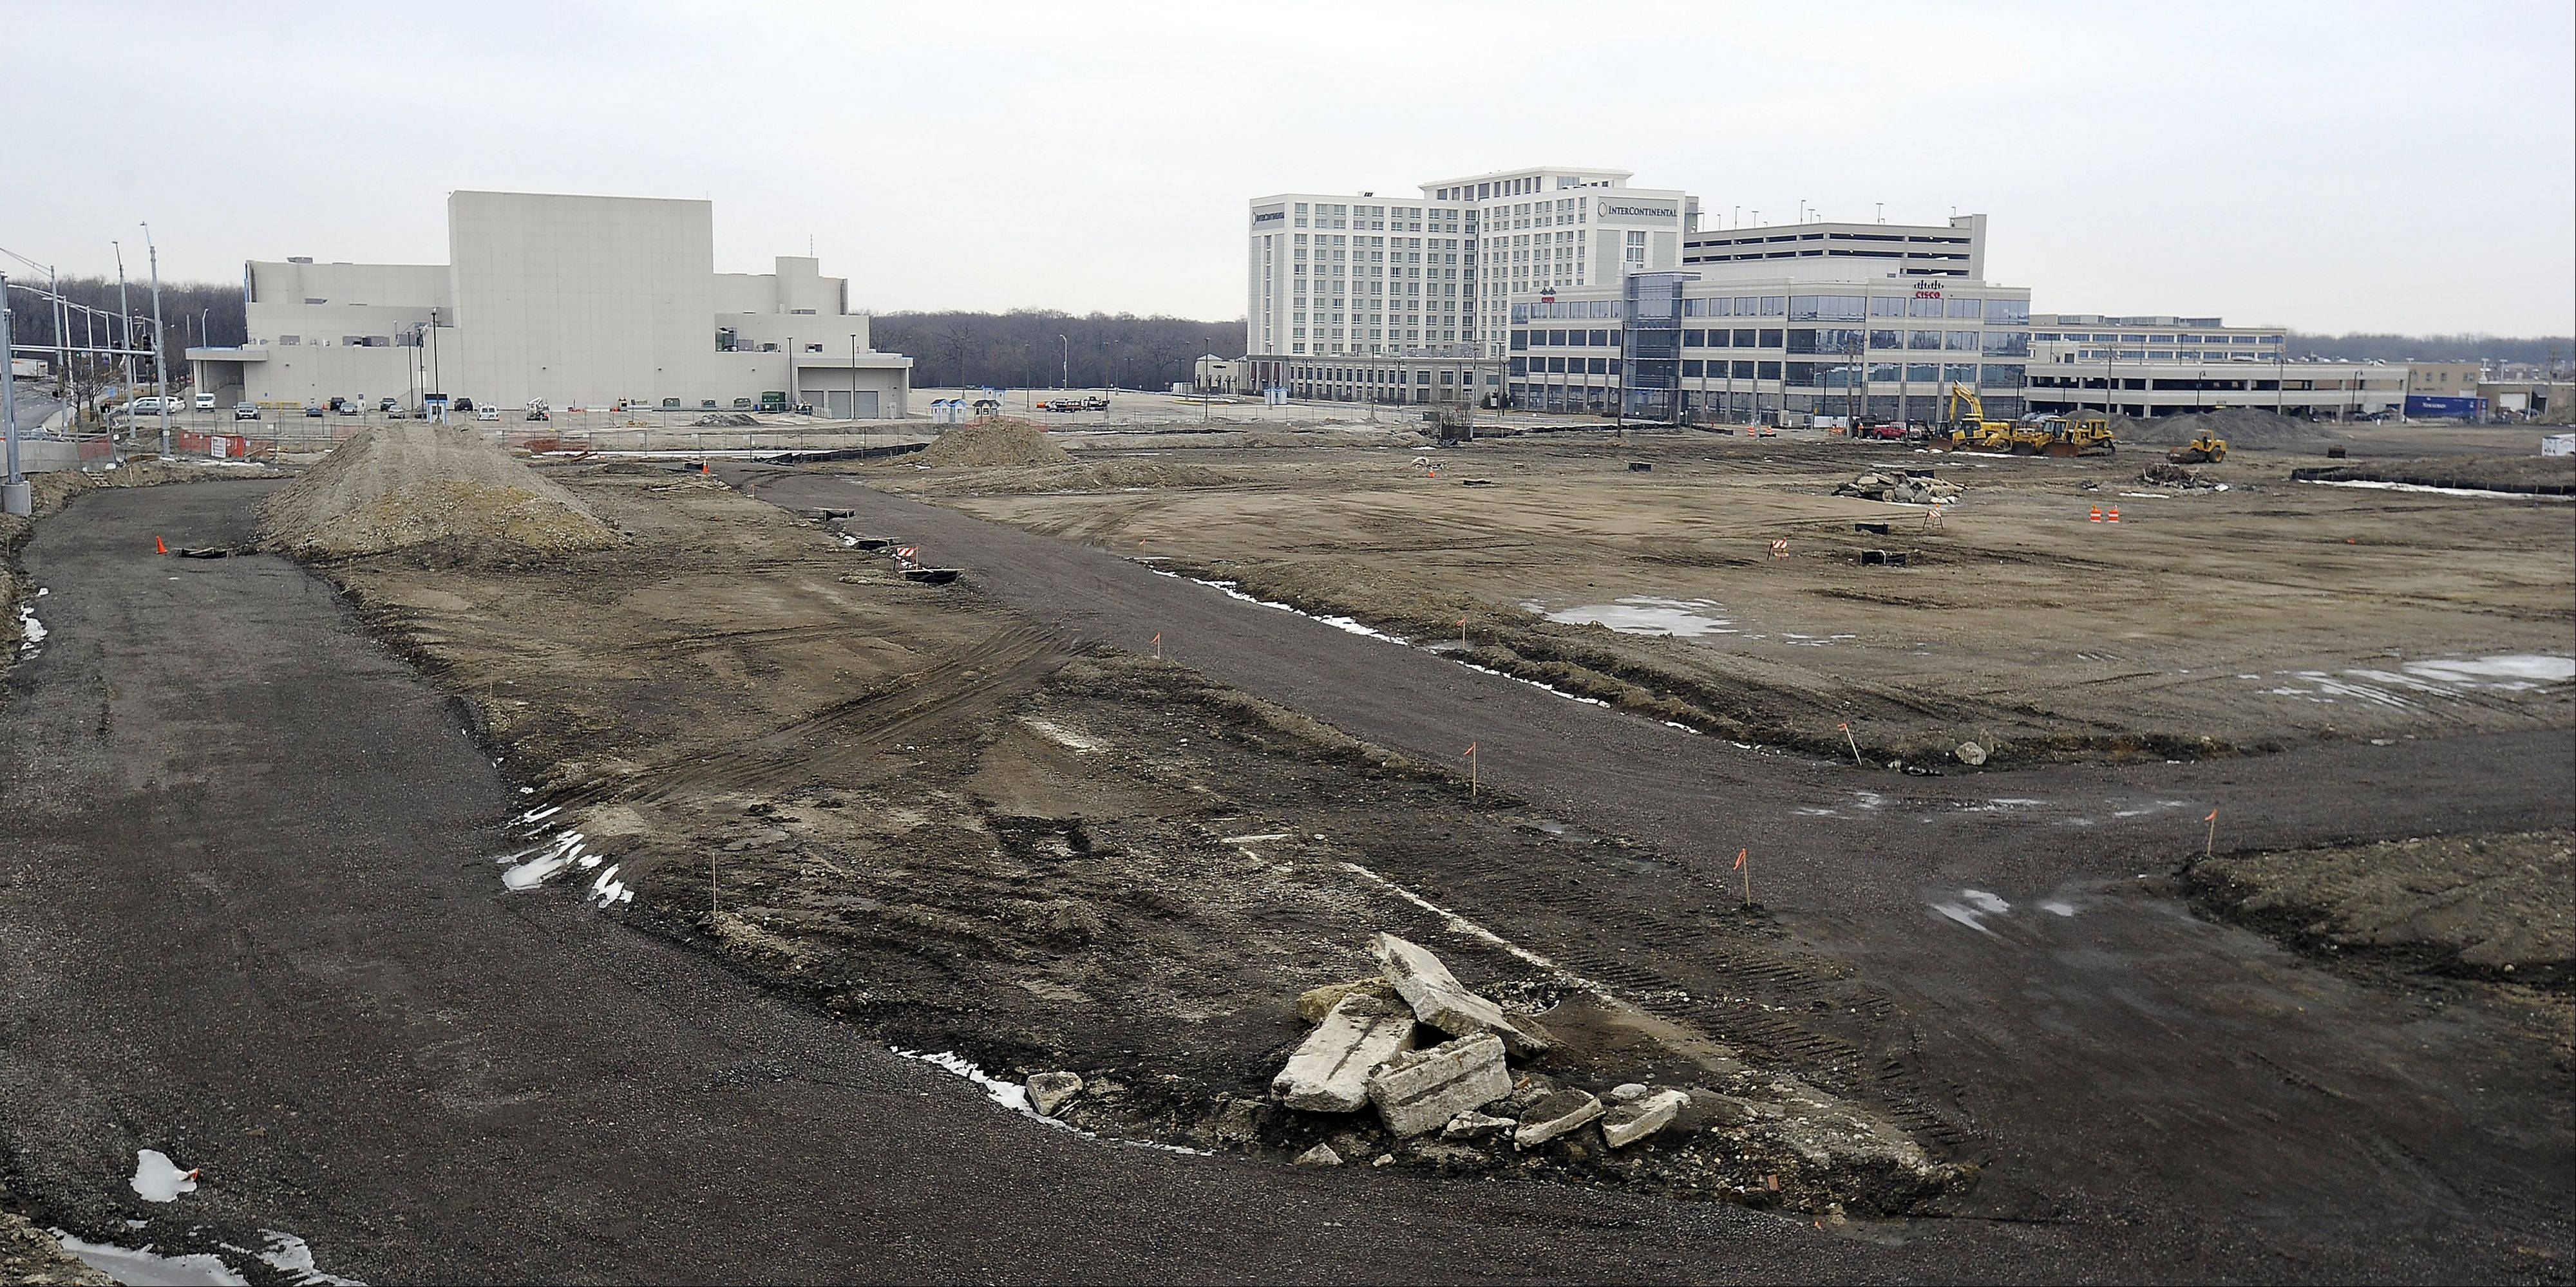 Not much activity was going on in mid-February at Rosemont's outlet mall construction site as heavy machines stand idle off Balmoral Avenue and the Tri-State Tollway.